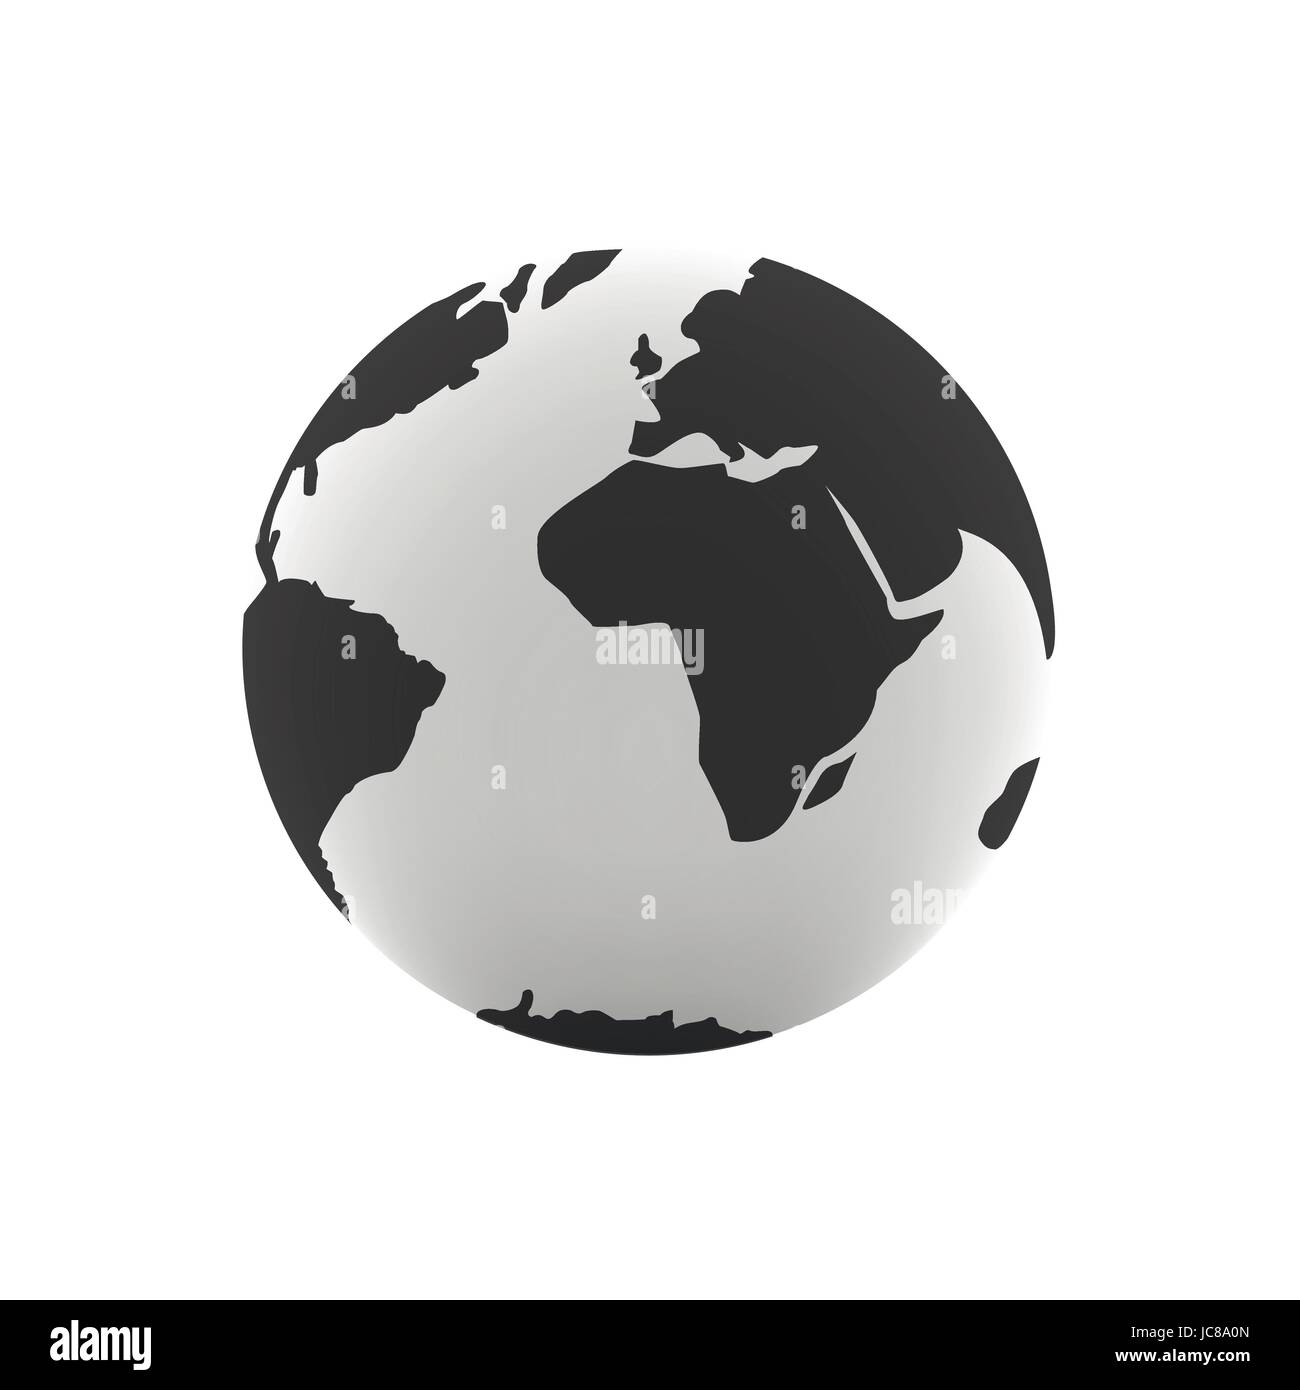 Earth globe illustration Photo Stock